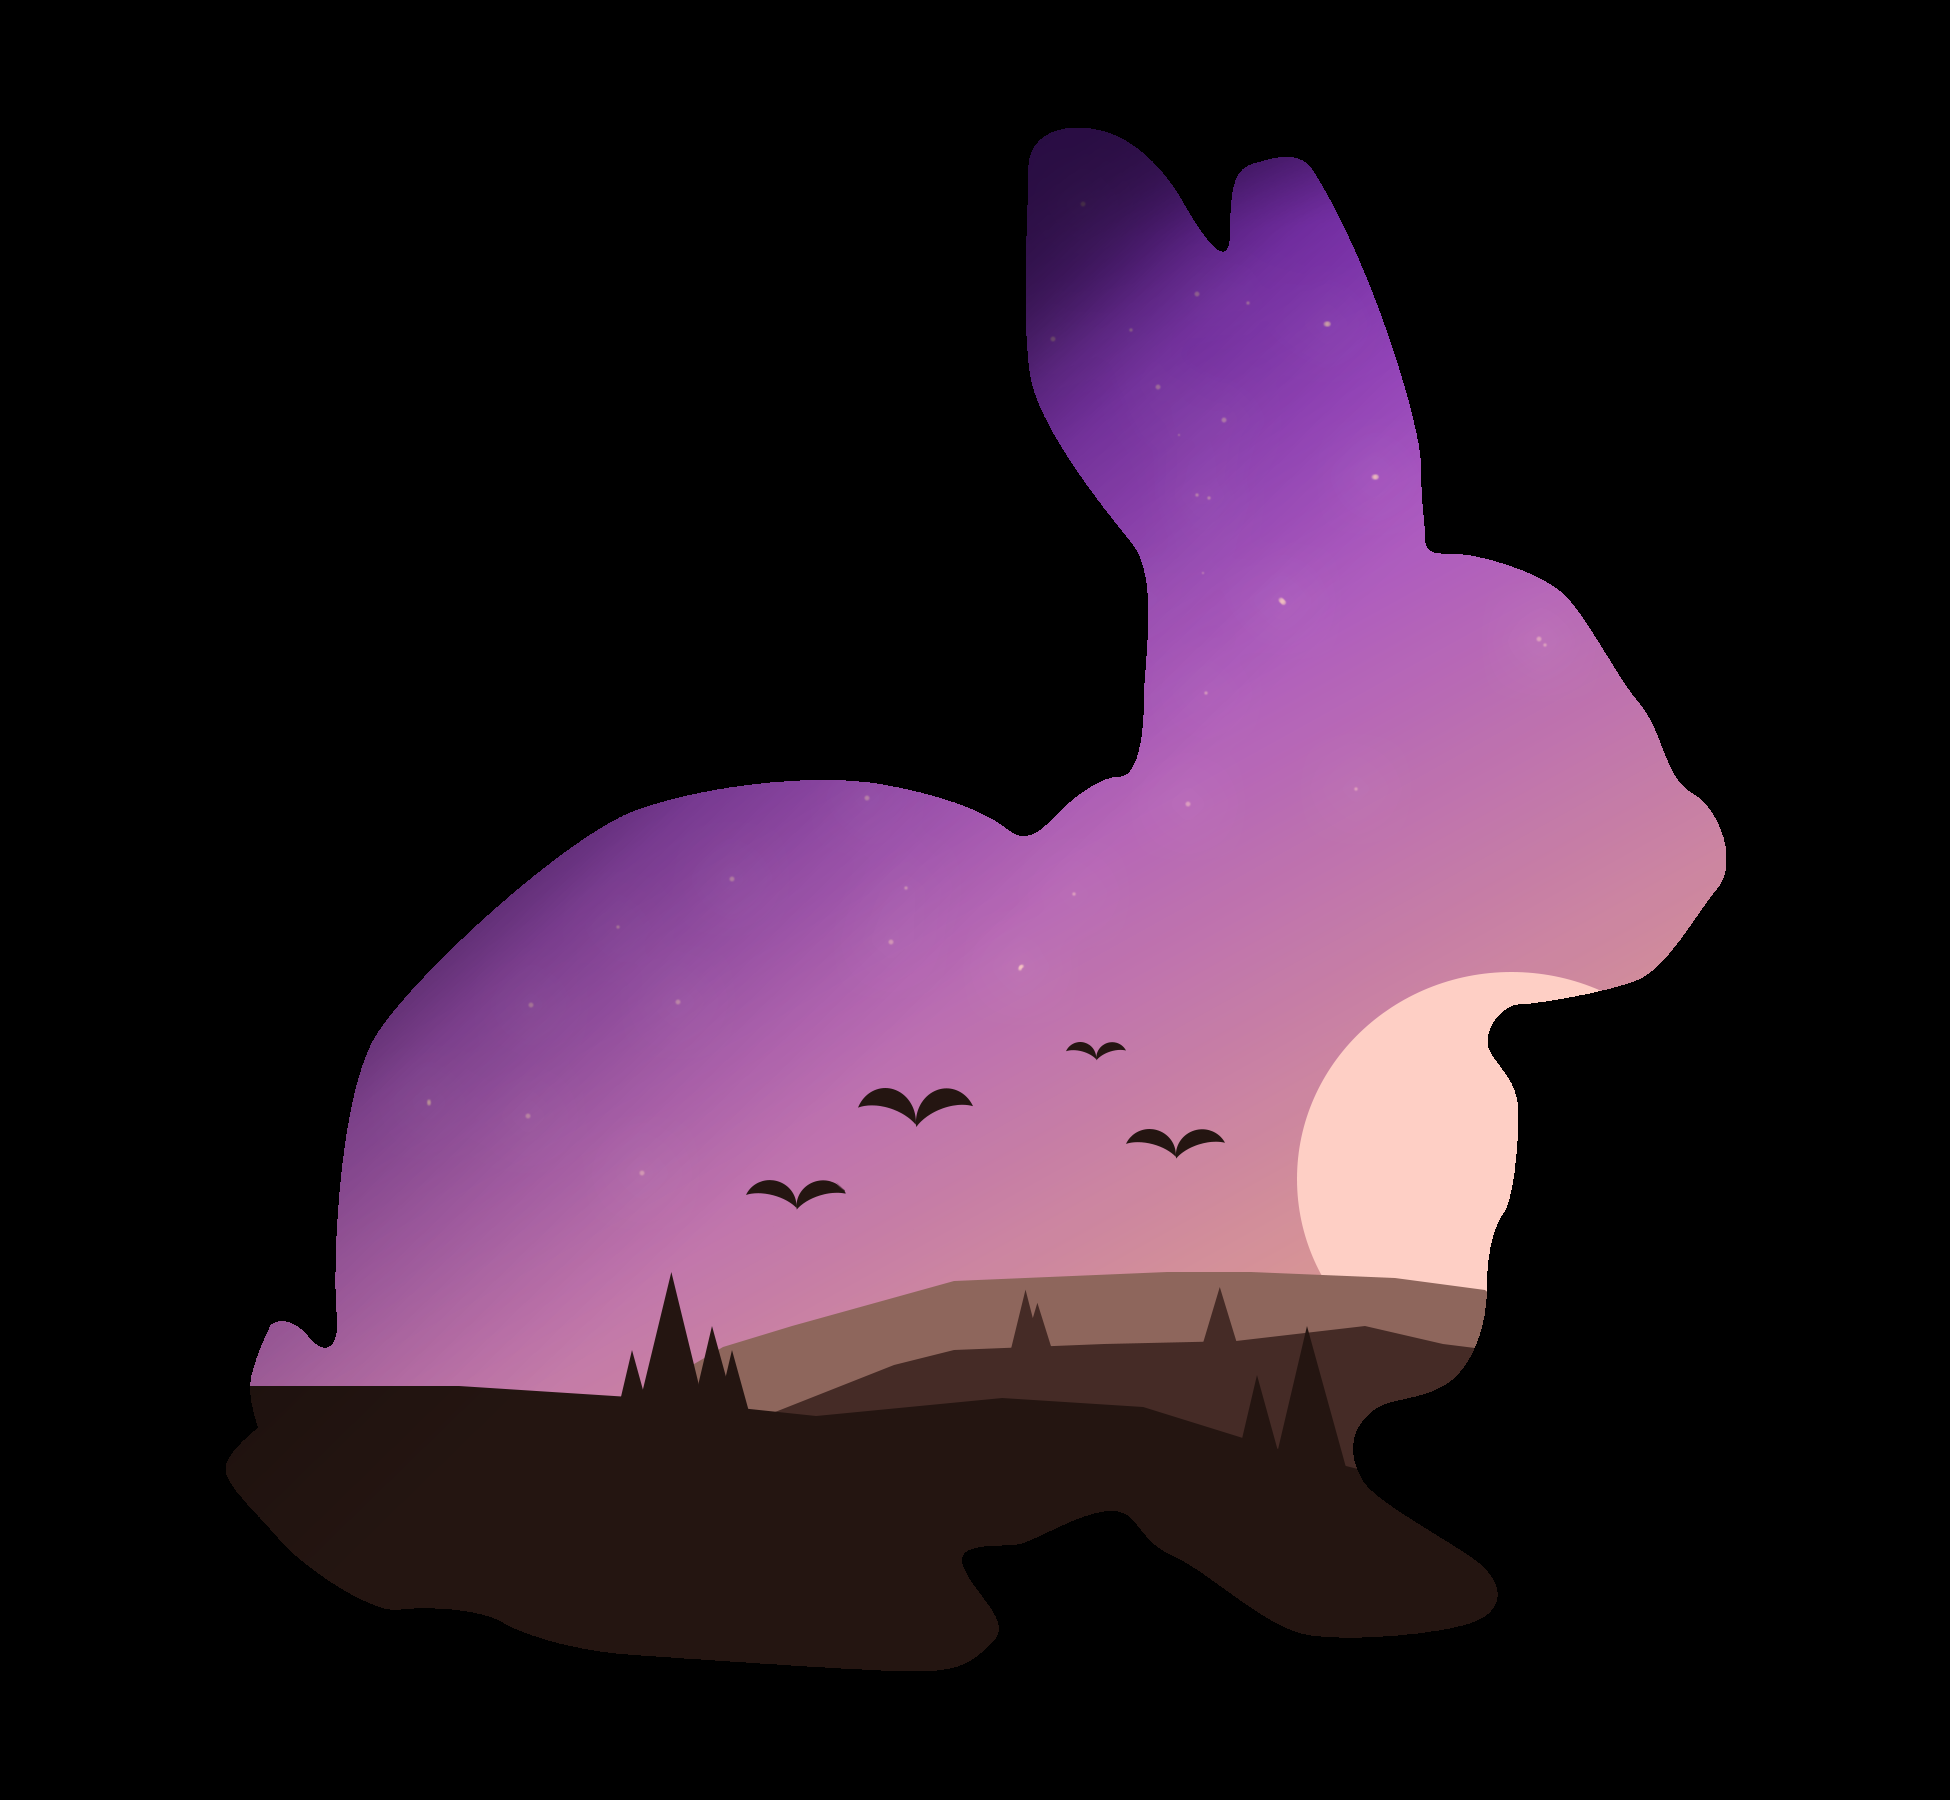 Rabbit Landscape